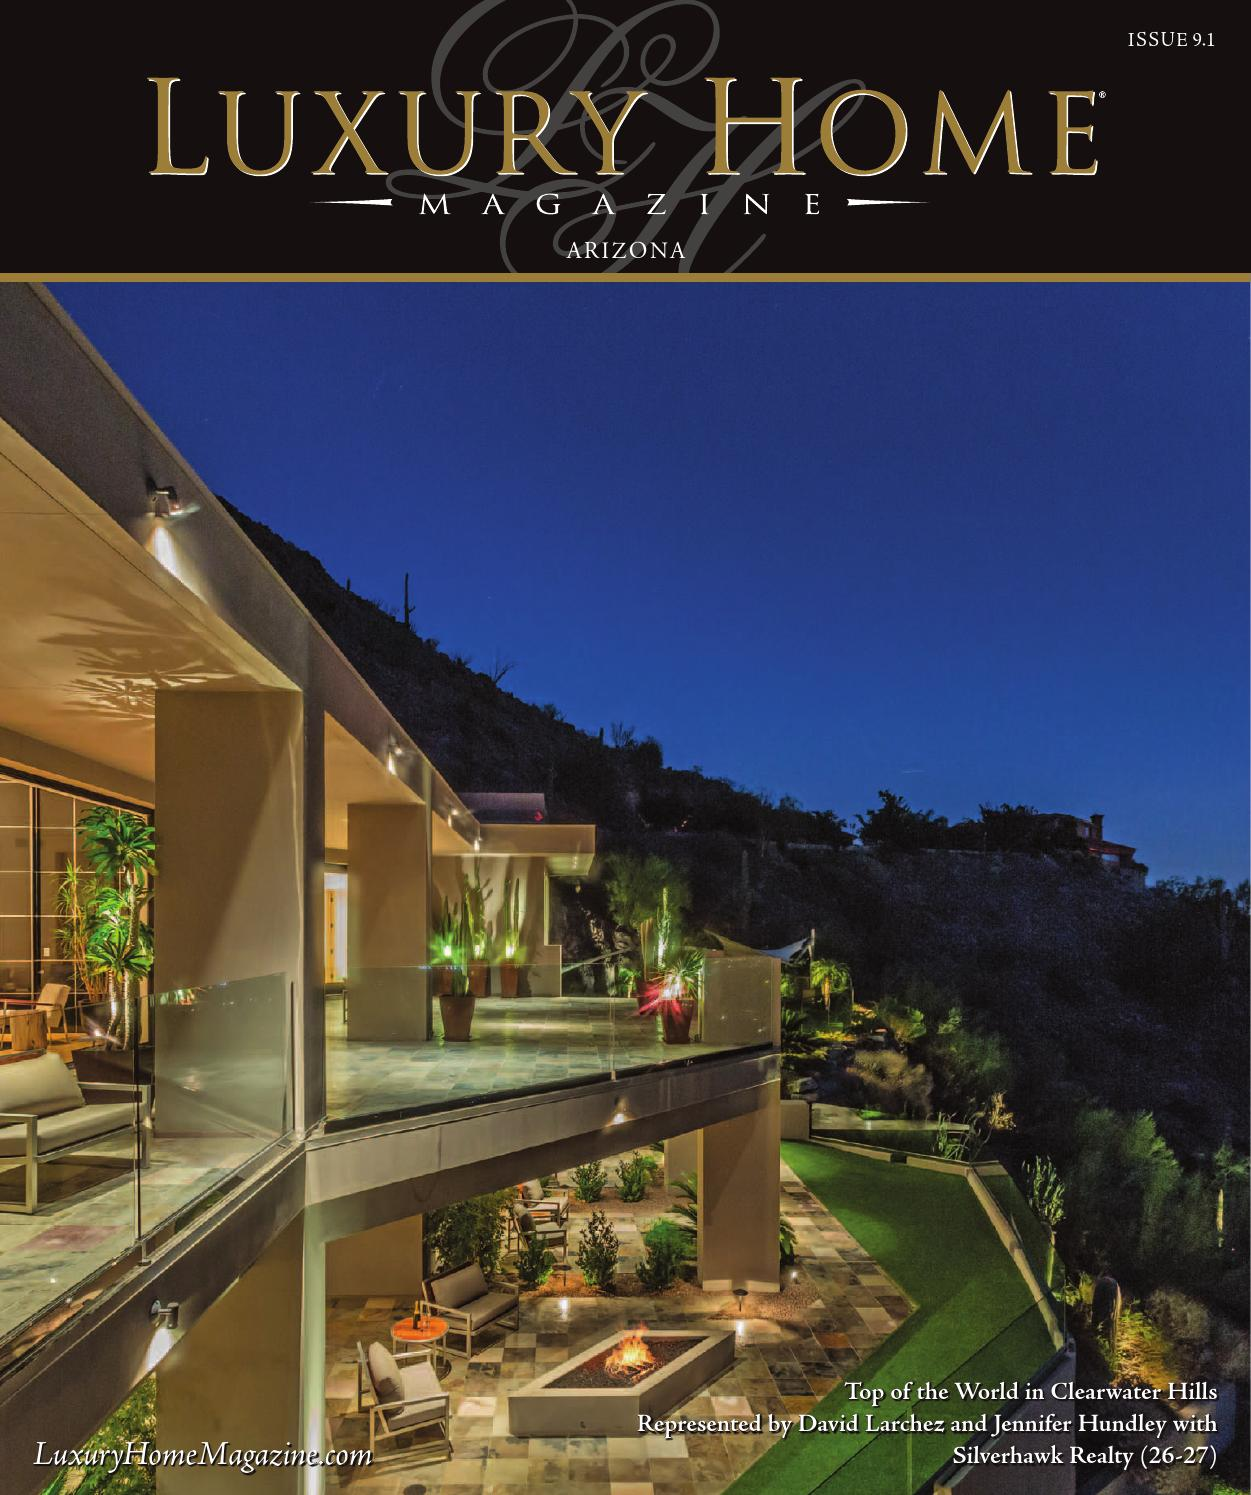 Luxury Home Magazine Arizona Issue 9 1 By Luxury Home Magazine Issuu